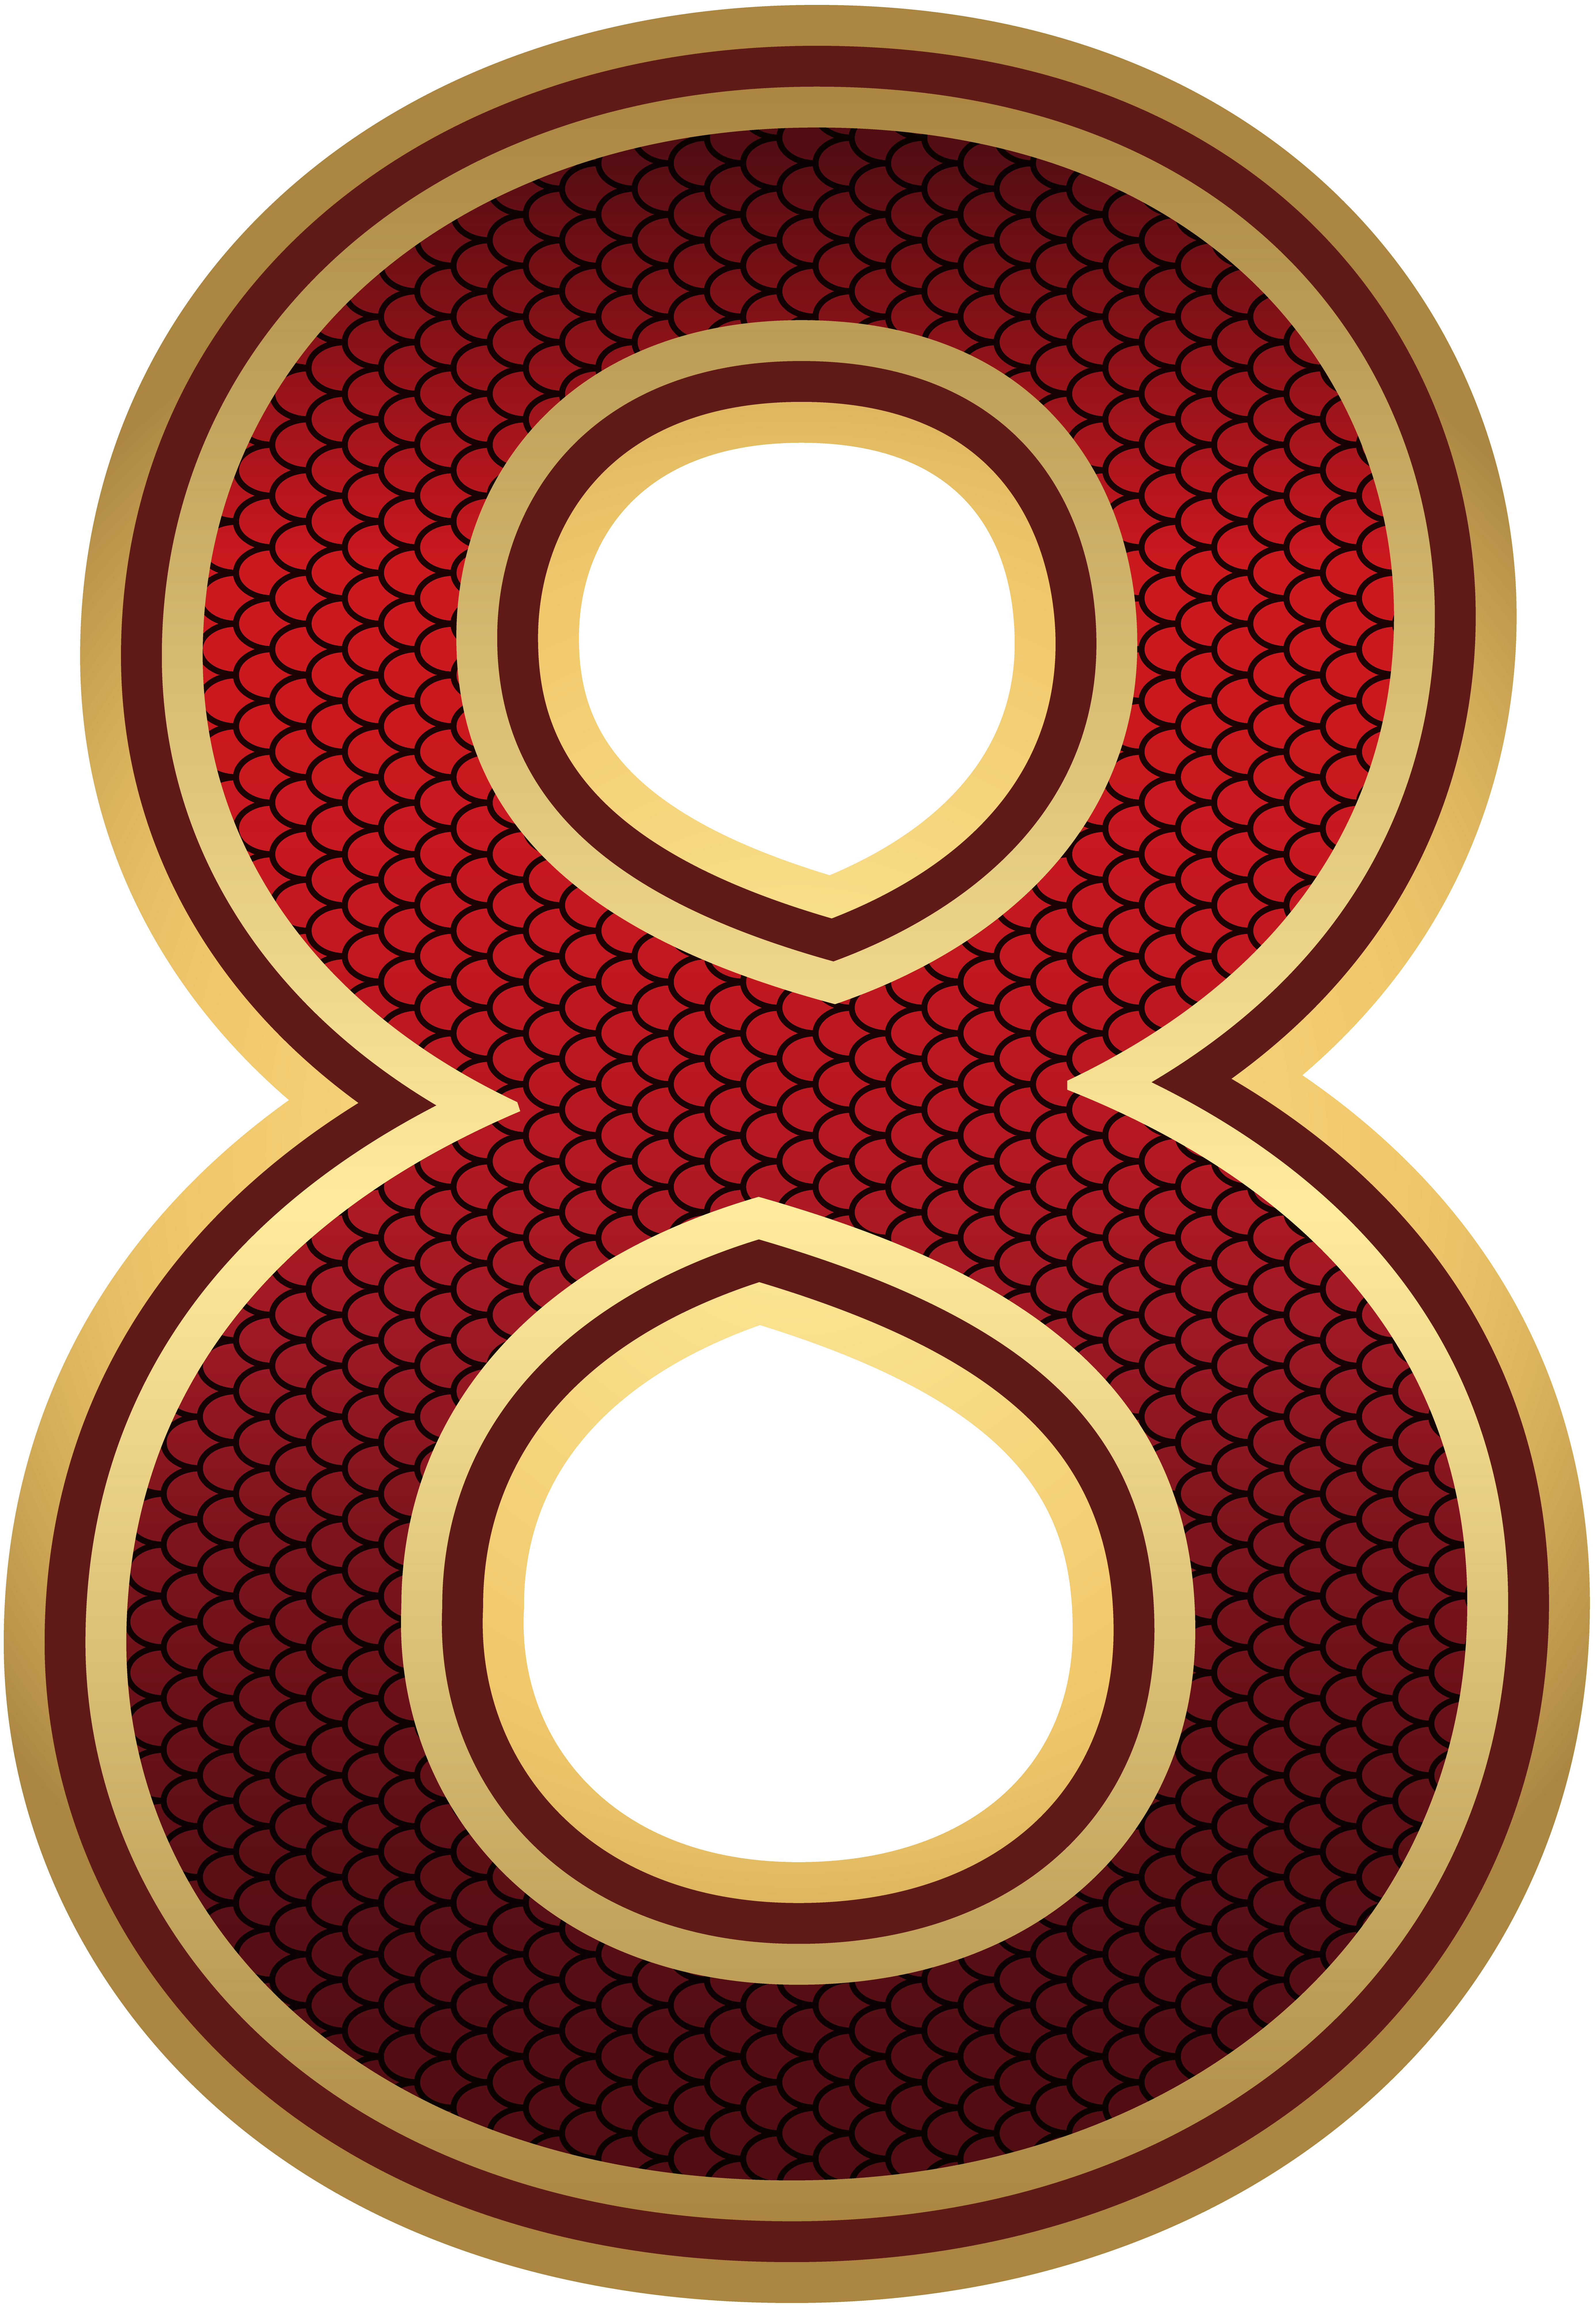 Number Eight Gold Shining Png Clip Art Image Gallery Yopriceville High Quality Images And Transpar Art Images Gold Picture Frames Graffiti Lettering Fonts